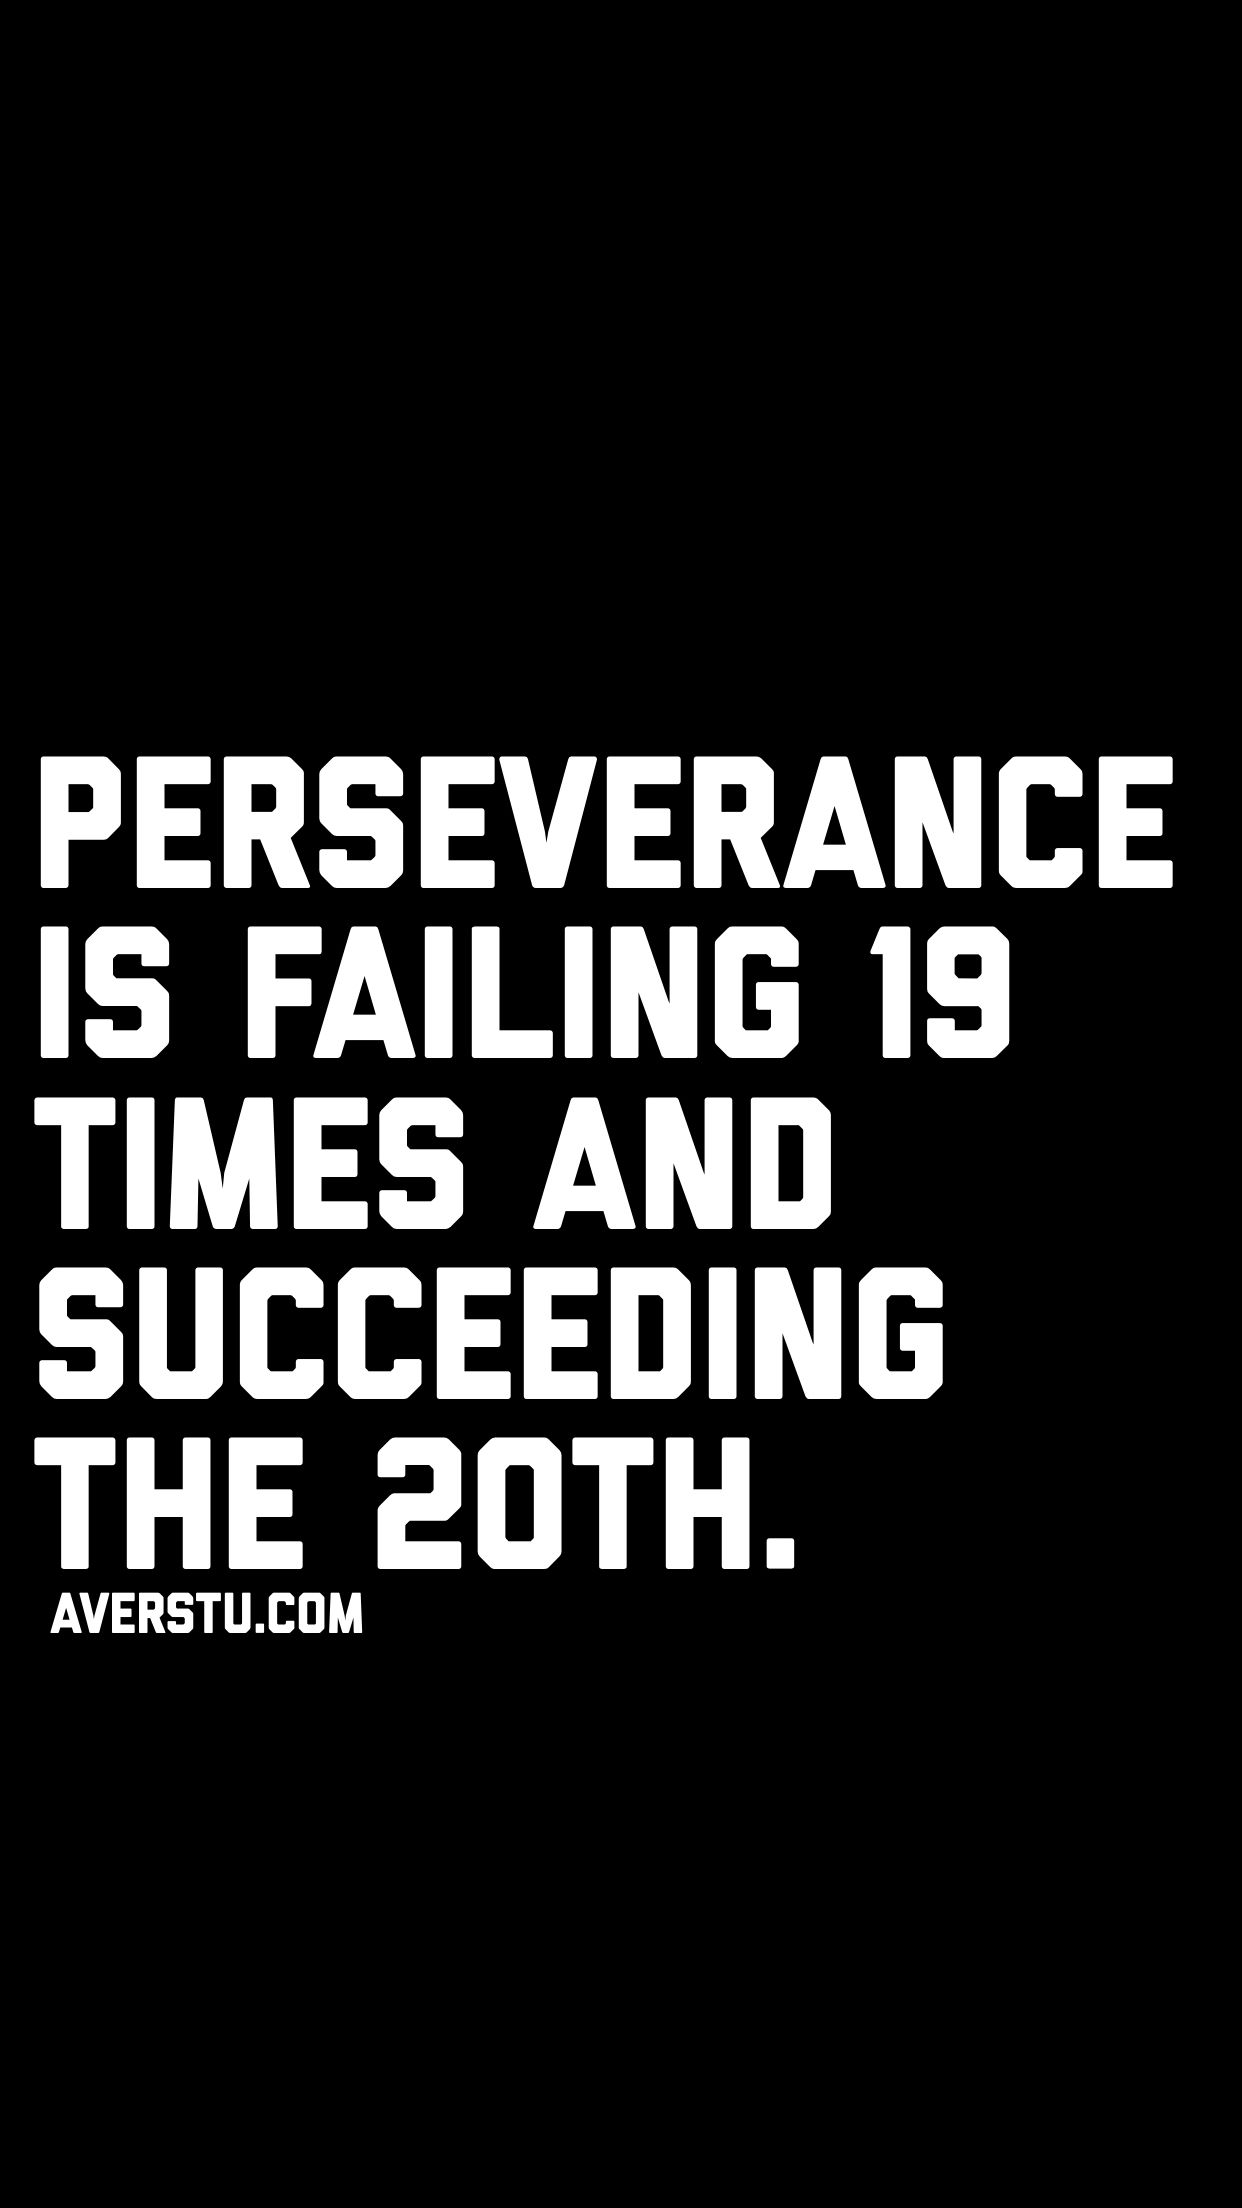 1200 Motivational Quotes Part 2 The Ultimate Inspirational Life Quotes In 2021 Perseverance Quotes Perseverance Quotes Determination Motivational Quotes